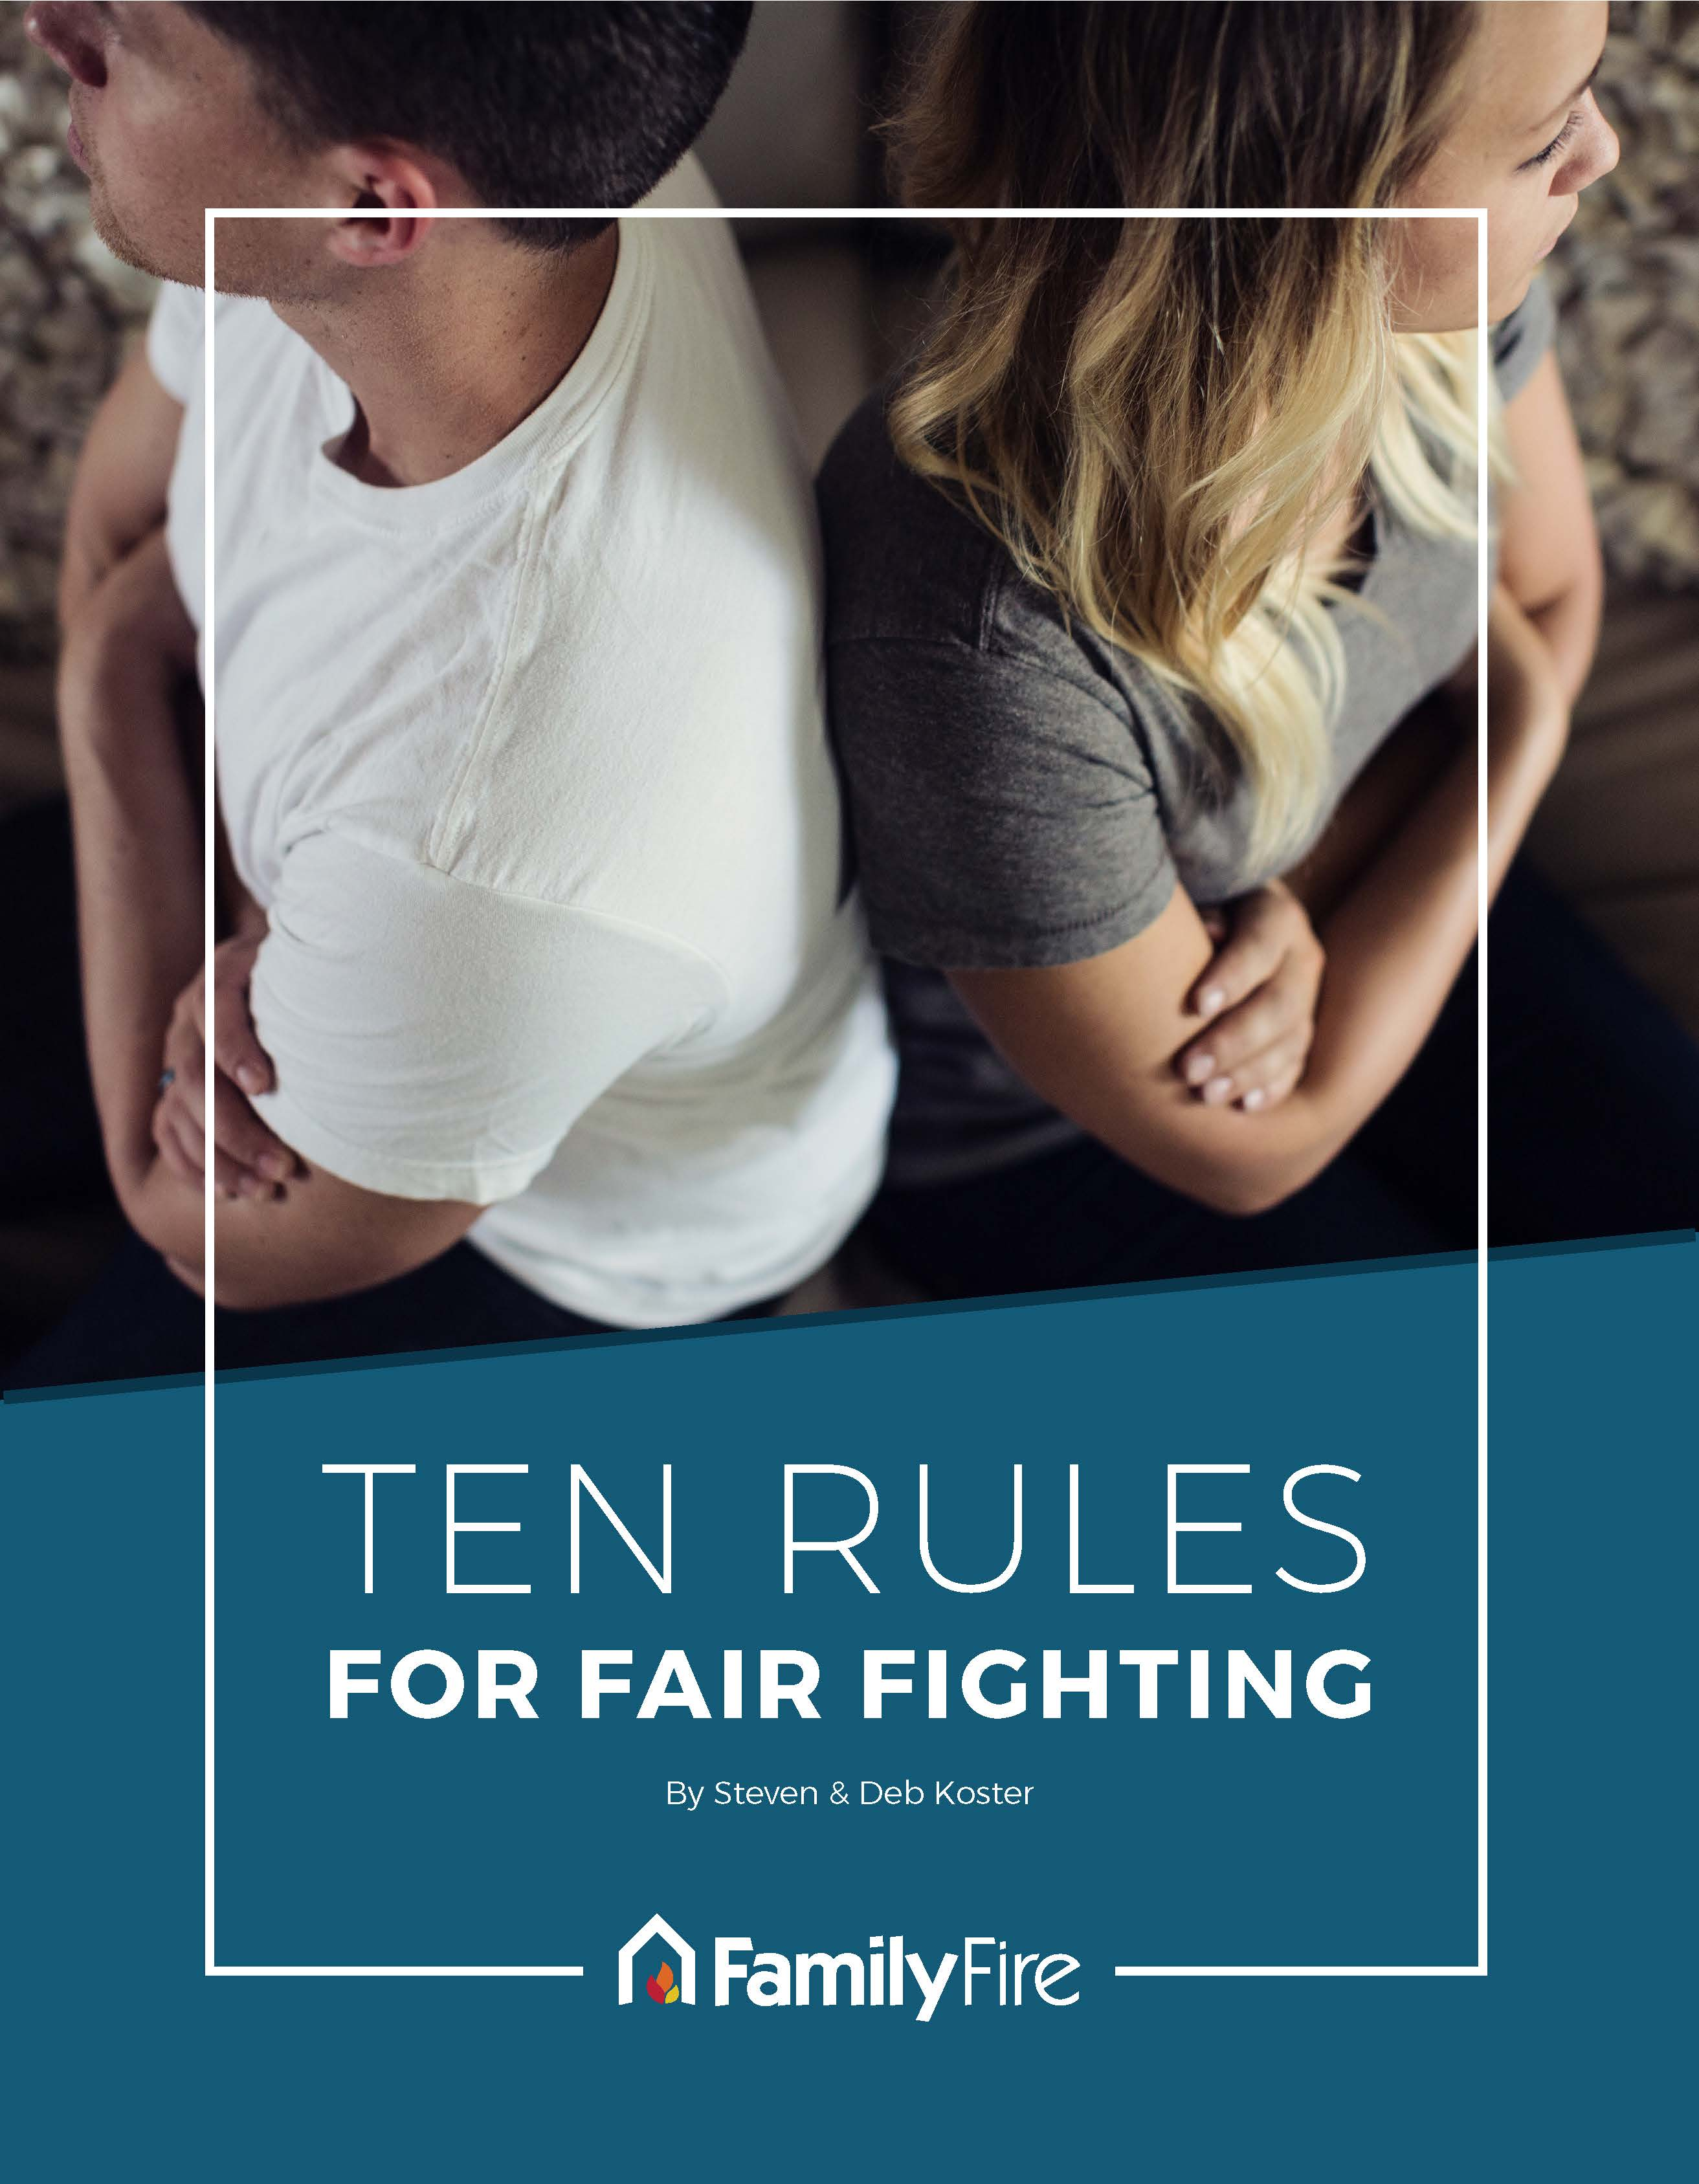 Ten Rules for Fair Fighting